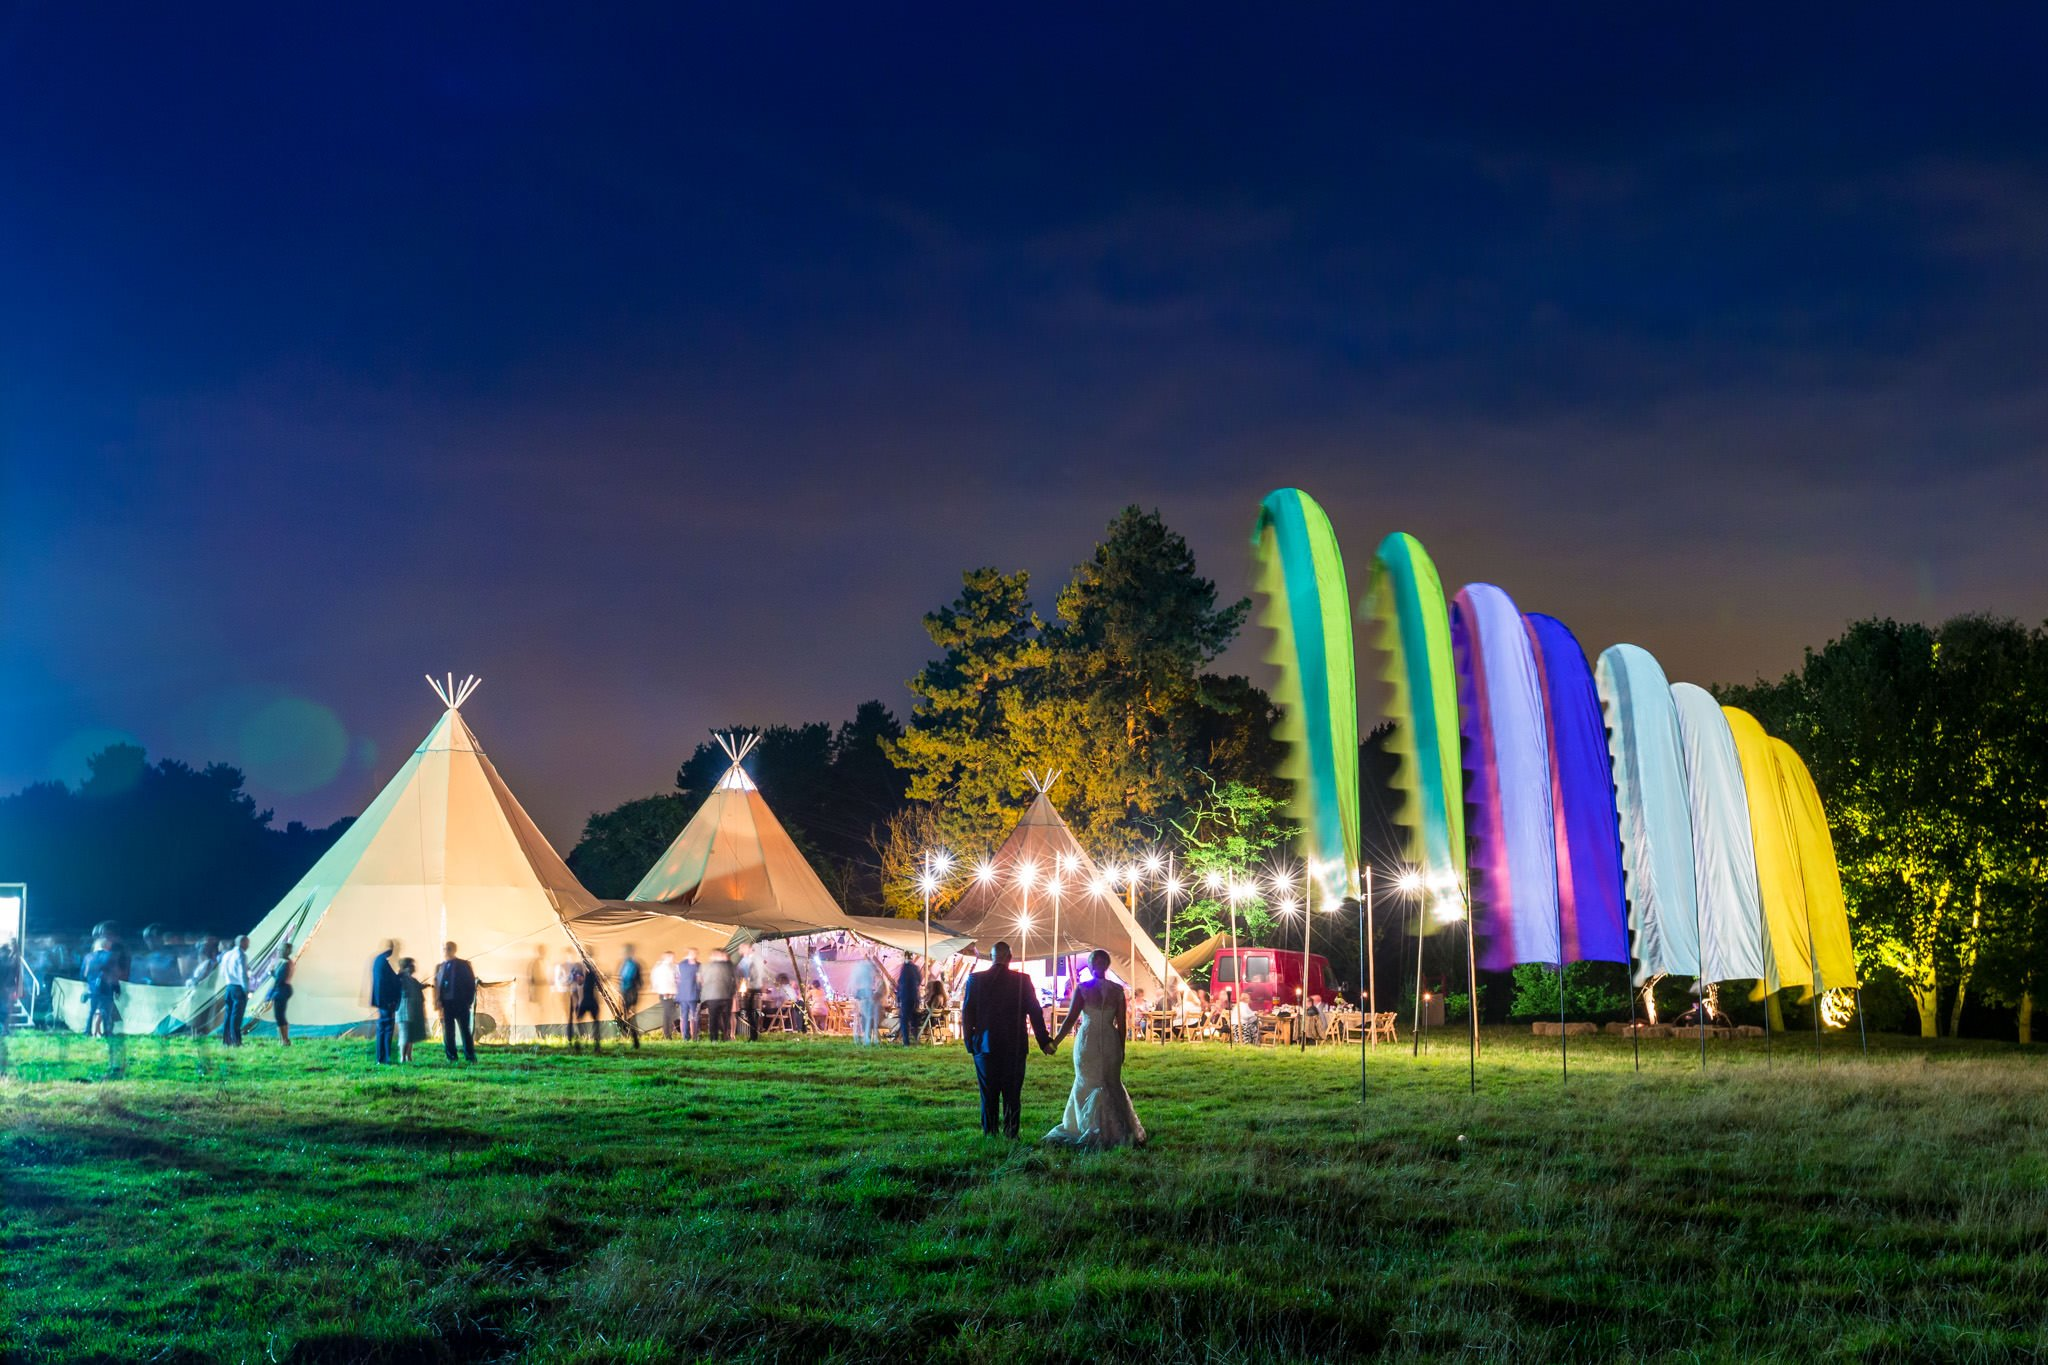 Tipi-Wedding-Photography-Cheshire-Photographer-20140913--10019